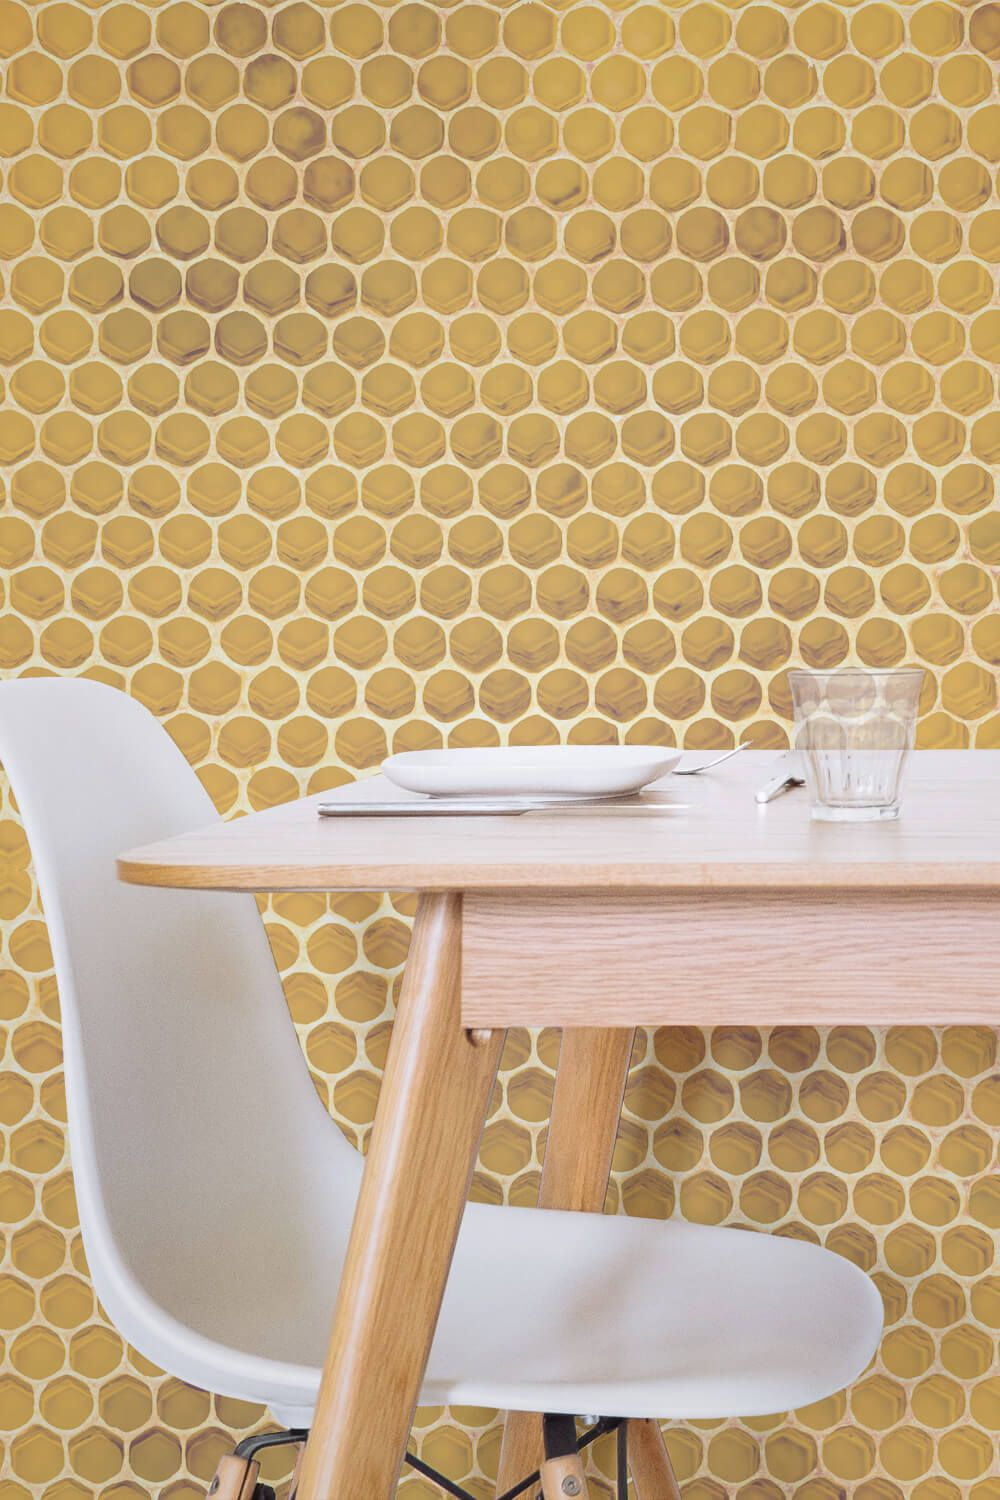 kitchen wallpaper texture gold the bright golden yellows will bring cheer into your home perfect for accent walls especially in the kitchen this honeycomb texture wallpaper honeycomb texture wallpaper mural murals